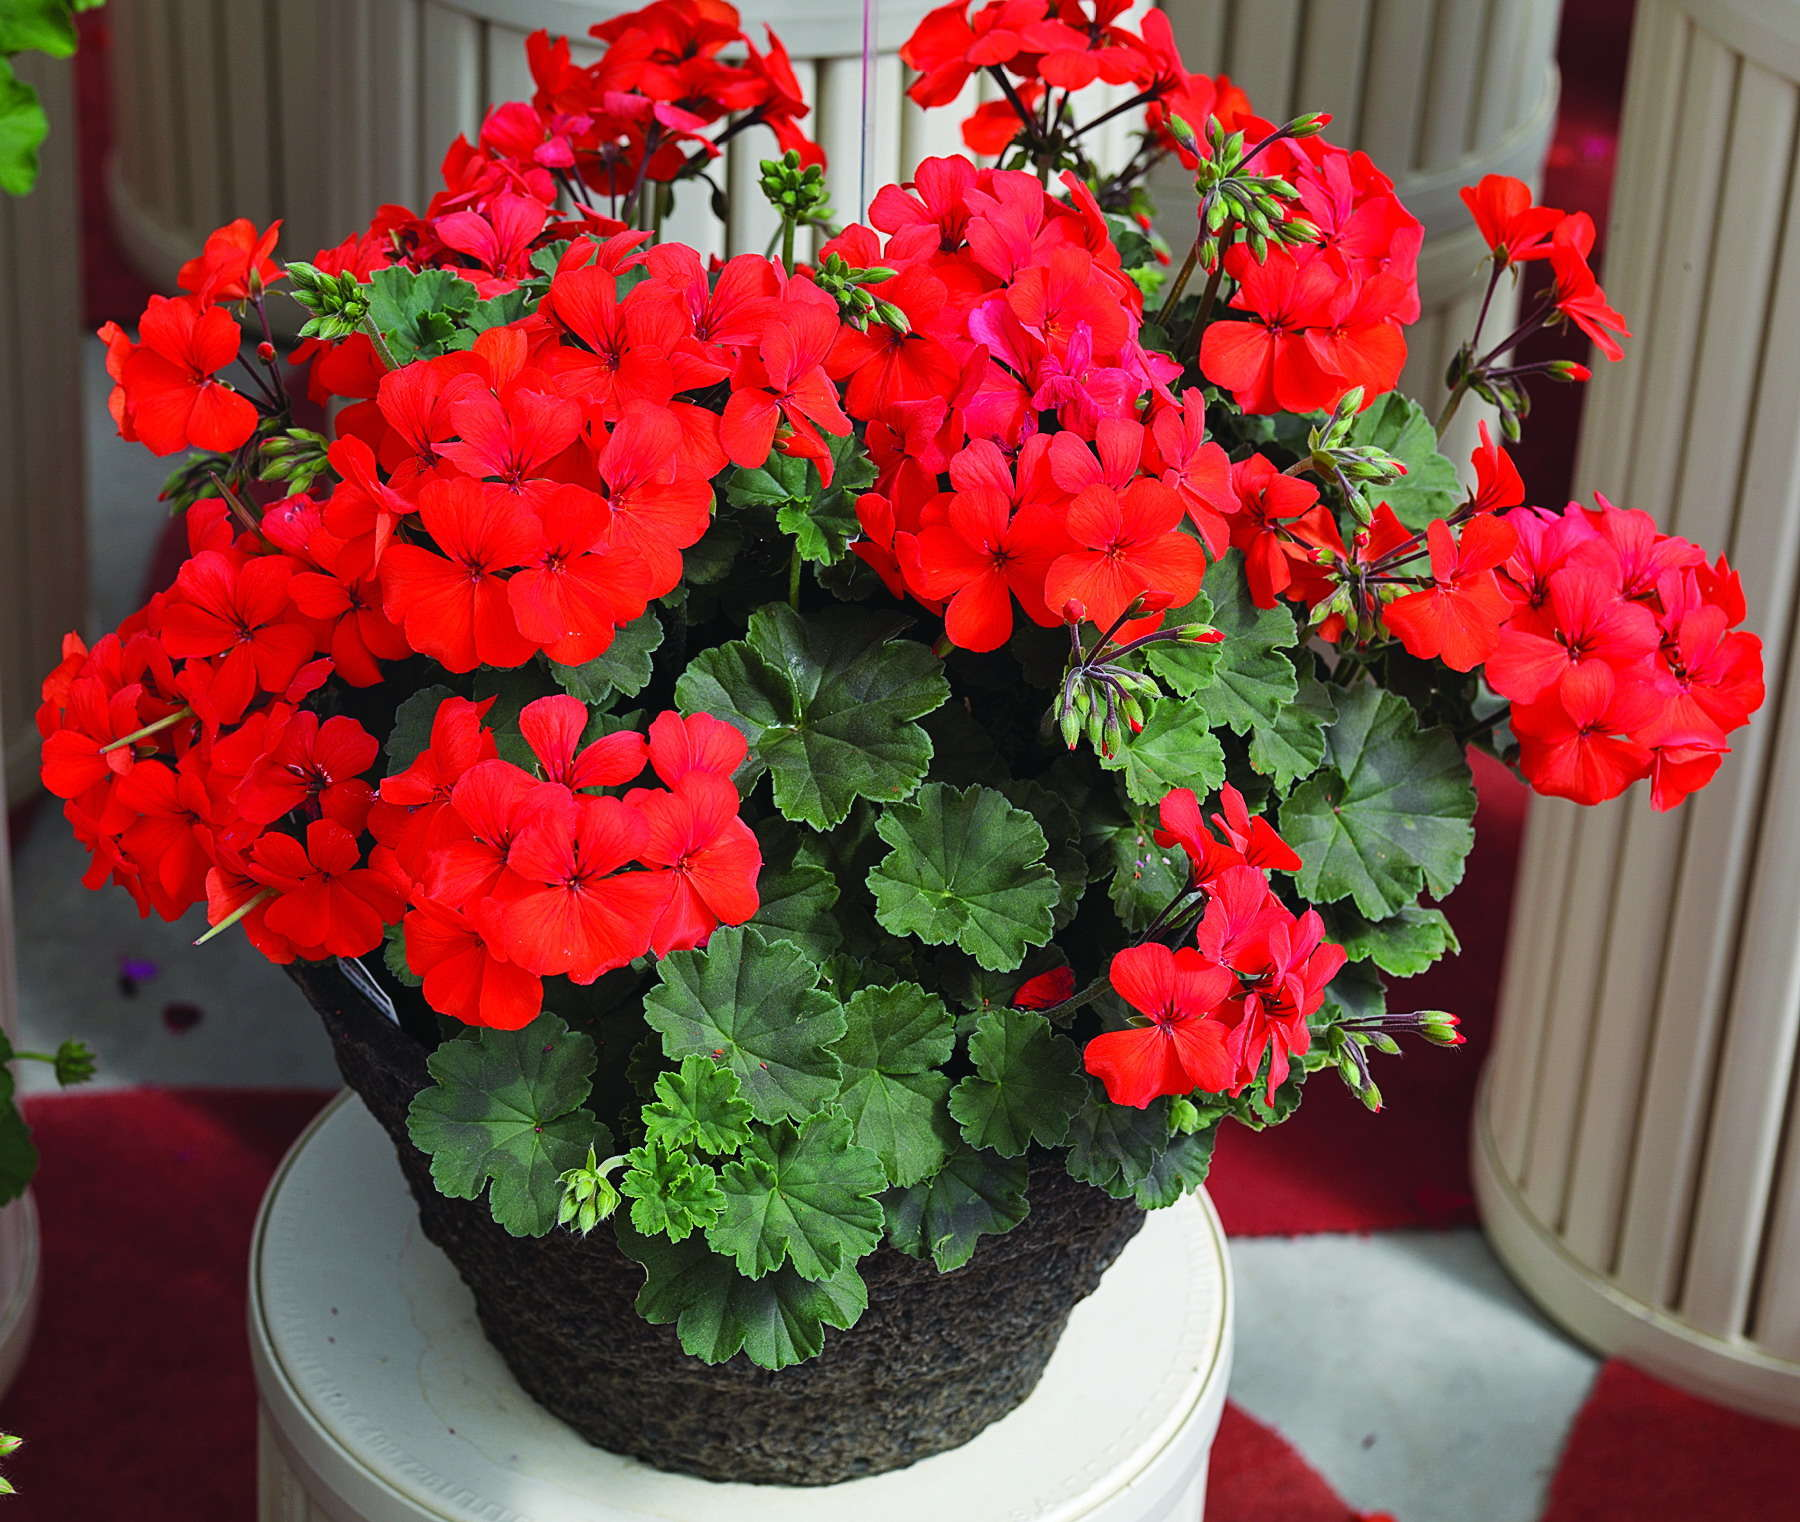 Picture of Live Ivy Geranium Caliente Red aka Pelargonium peltatum Plant Fit 1QRT Pot